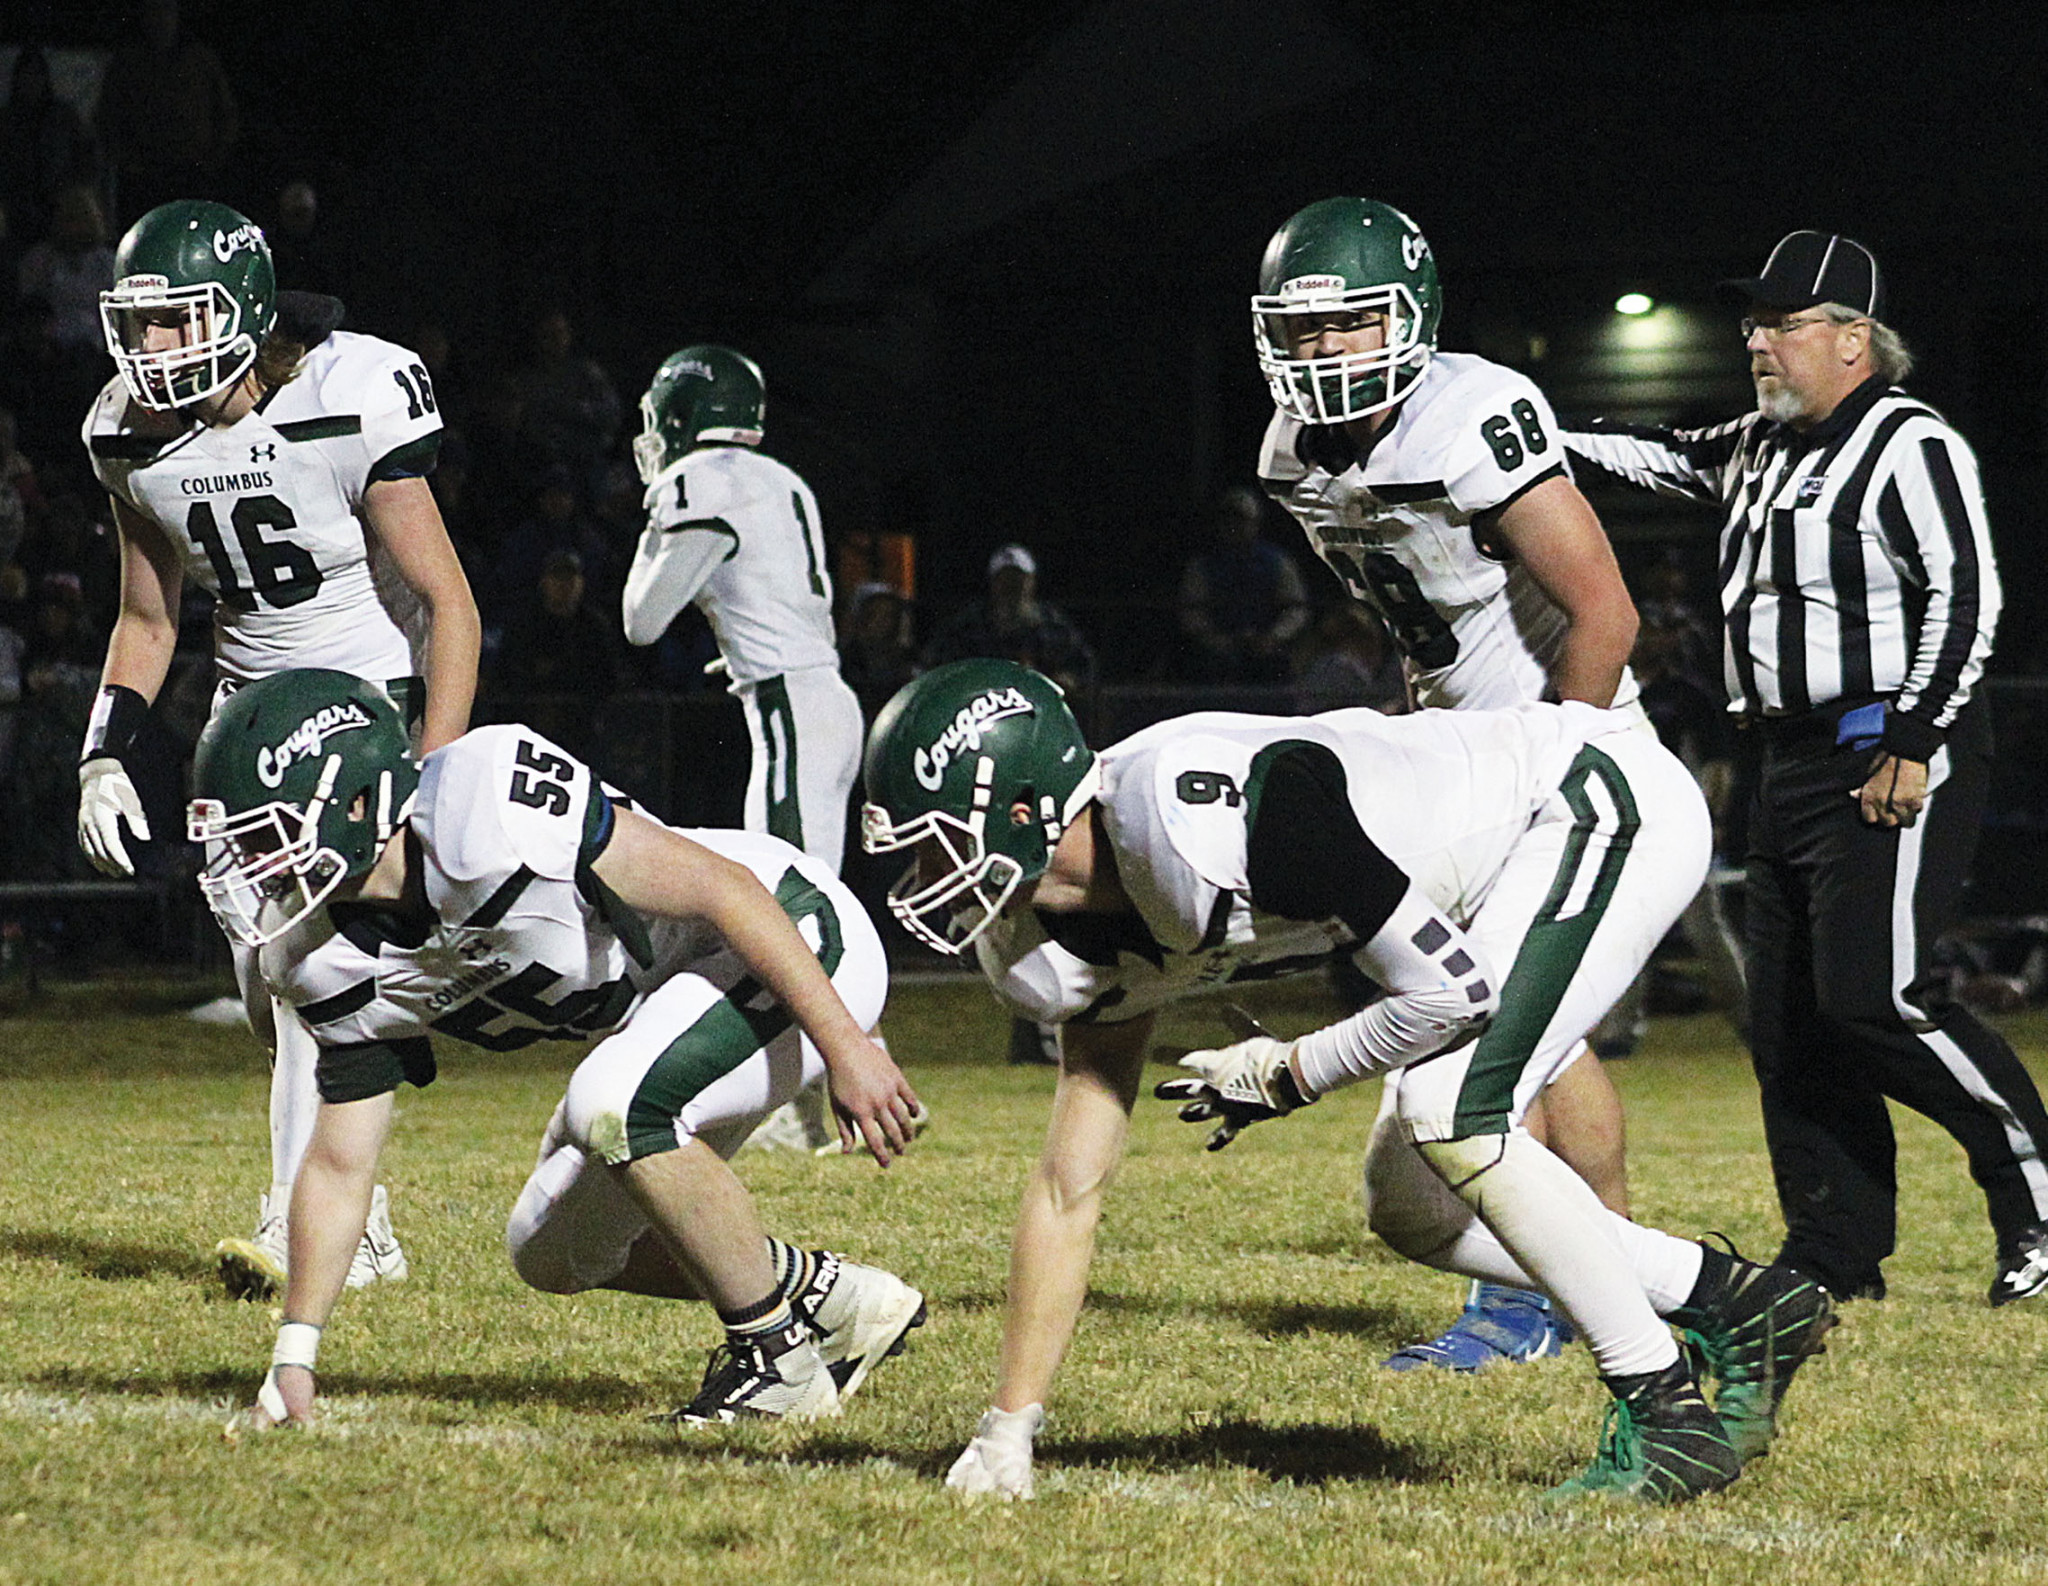 Photo by Lorie Martinez    From the left: Cougar players Keegan Goddard (No. 16), Peyton Alwardt (No. 55), Trey Stampfel (No. 1), Tommy Campbell (No. 9) and Izaak Huncovsky (No. 68).